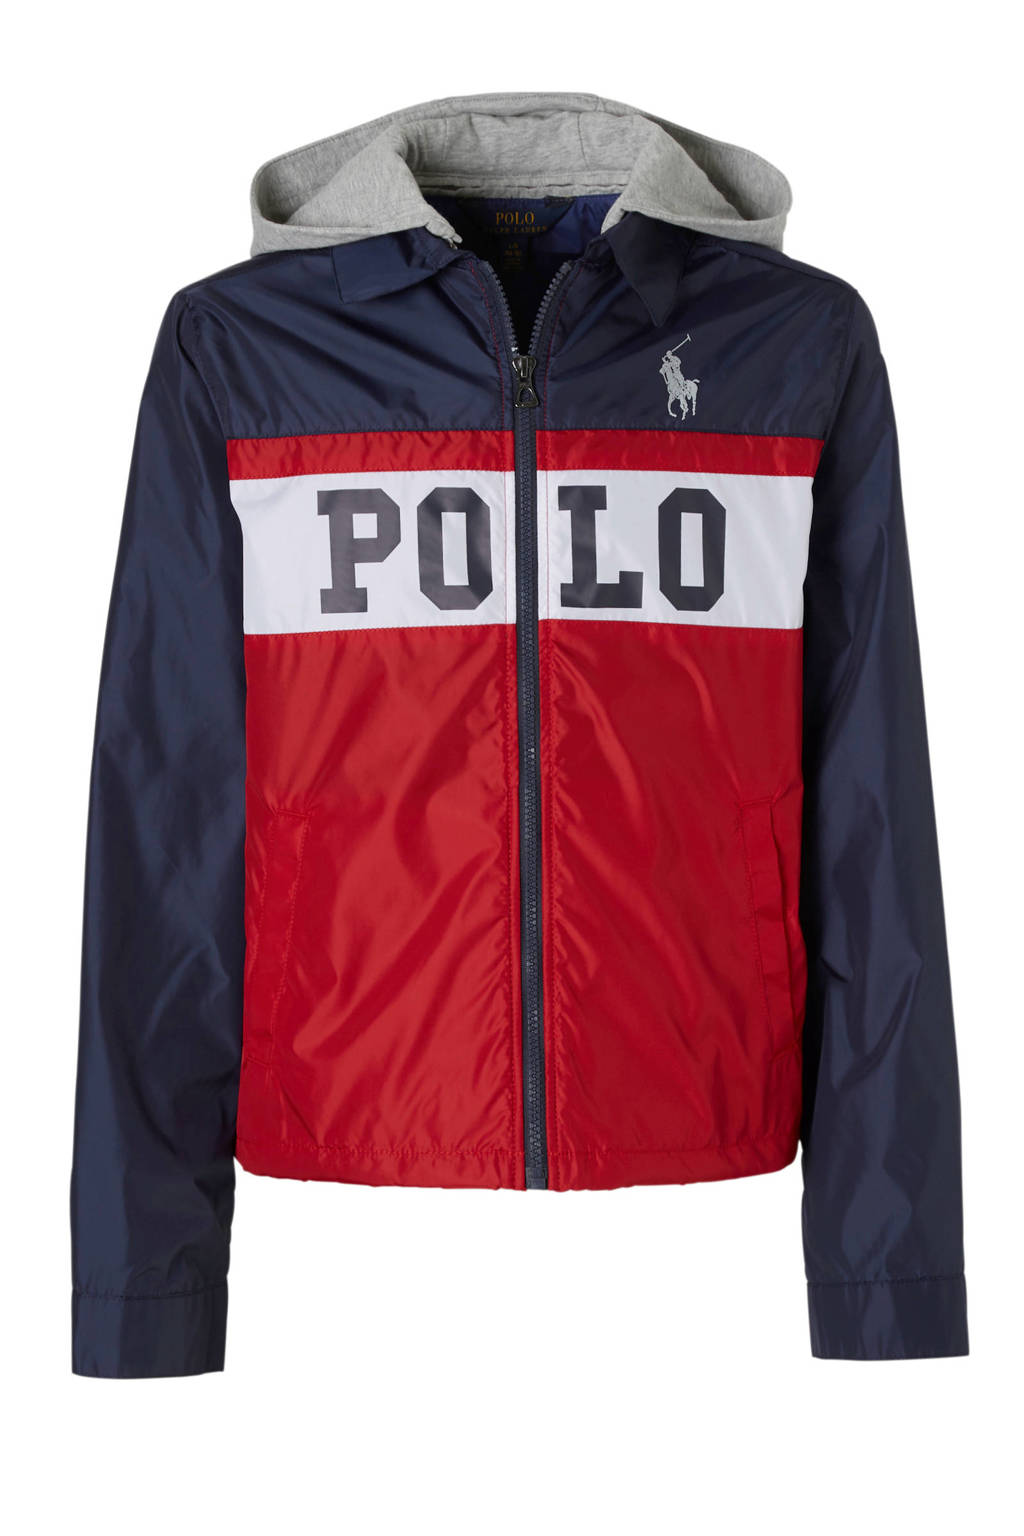 POLO Ralph Lauren zomerjas rood, Rood/donkerblauw/wit